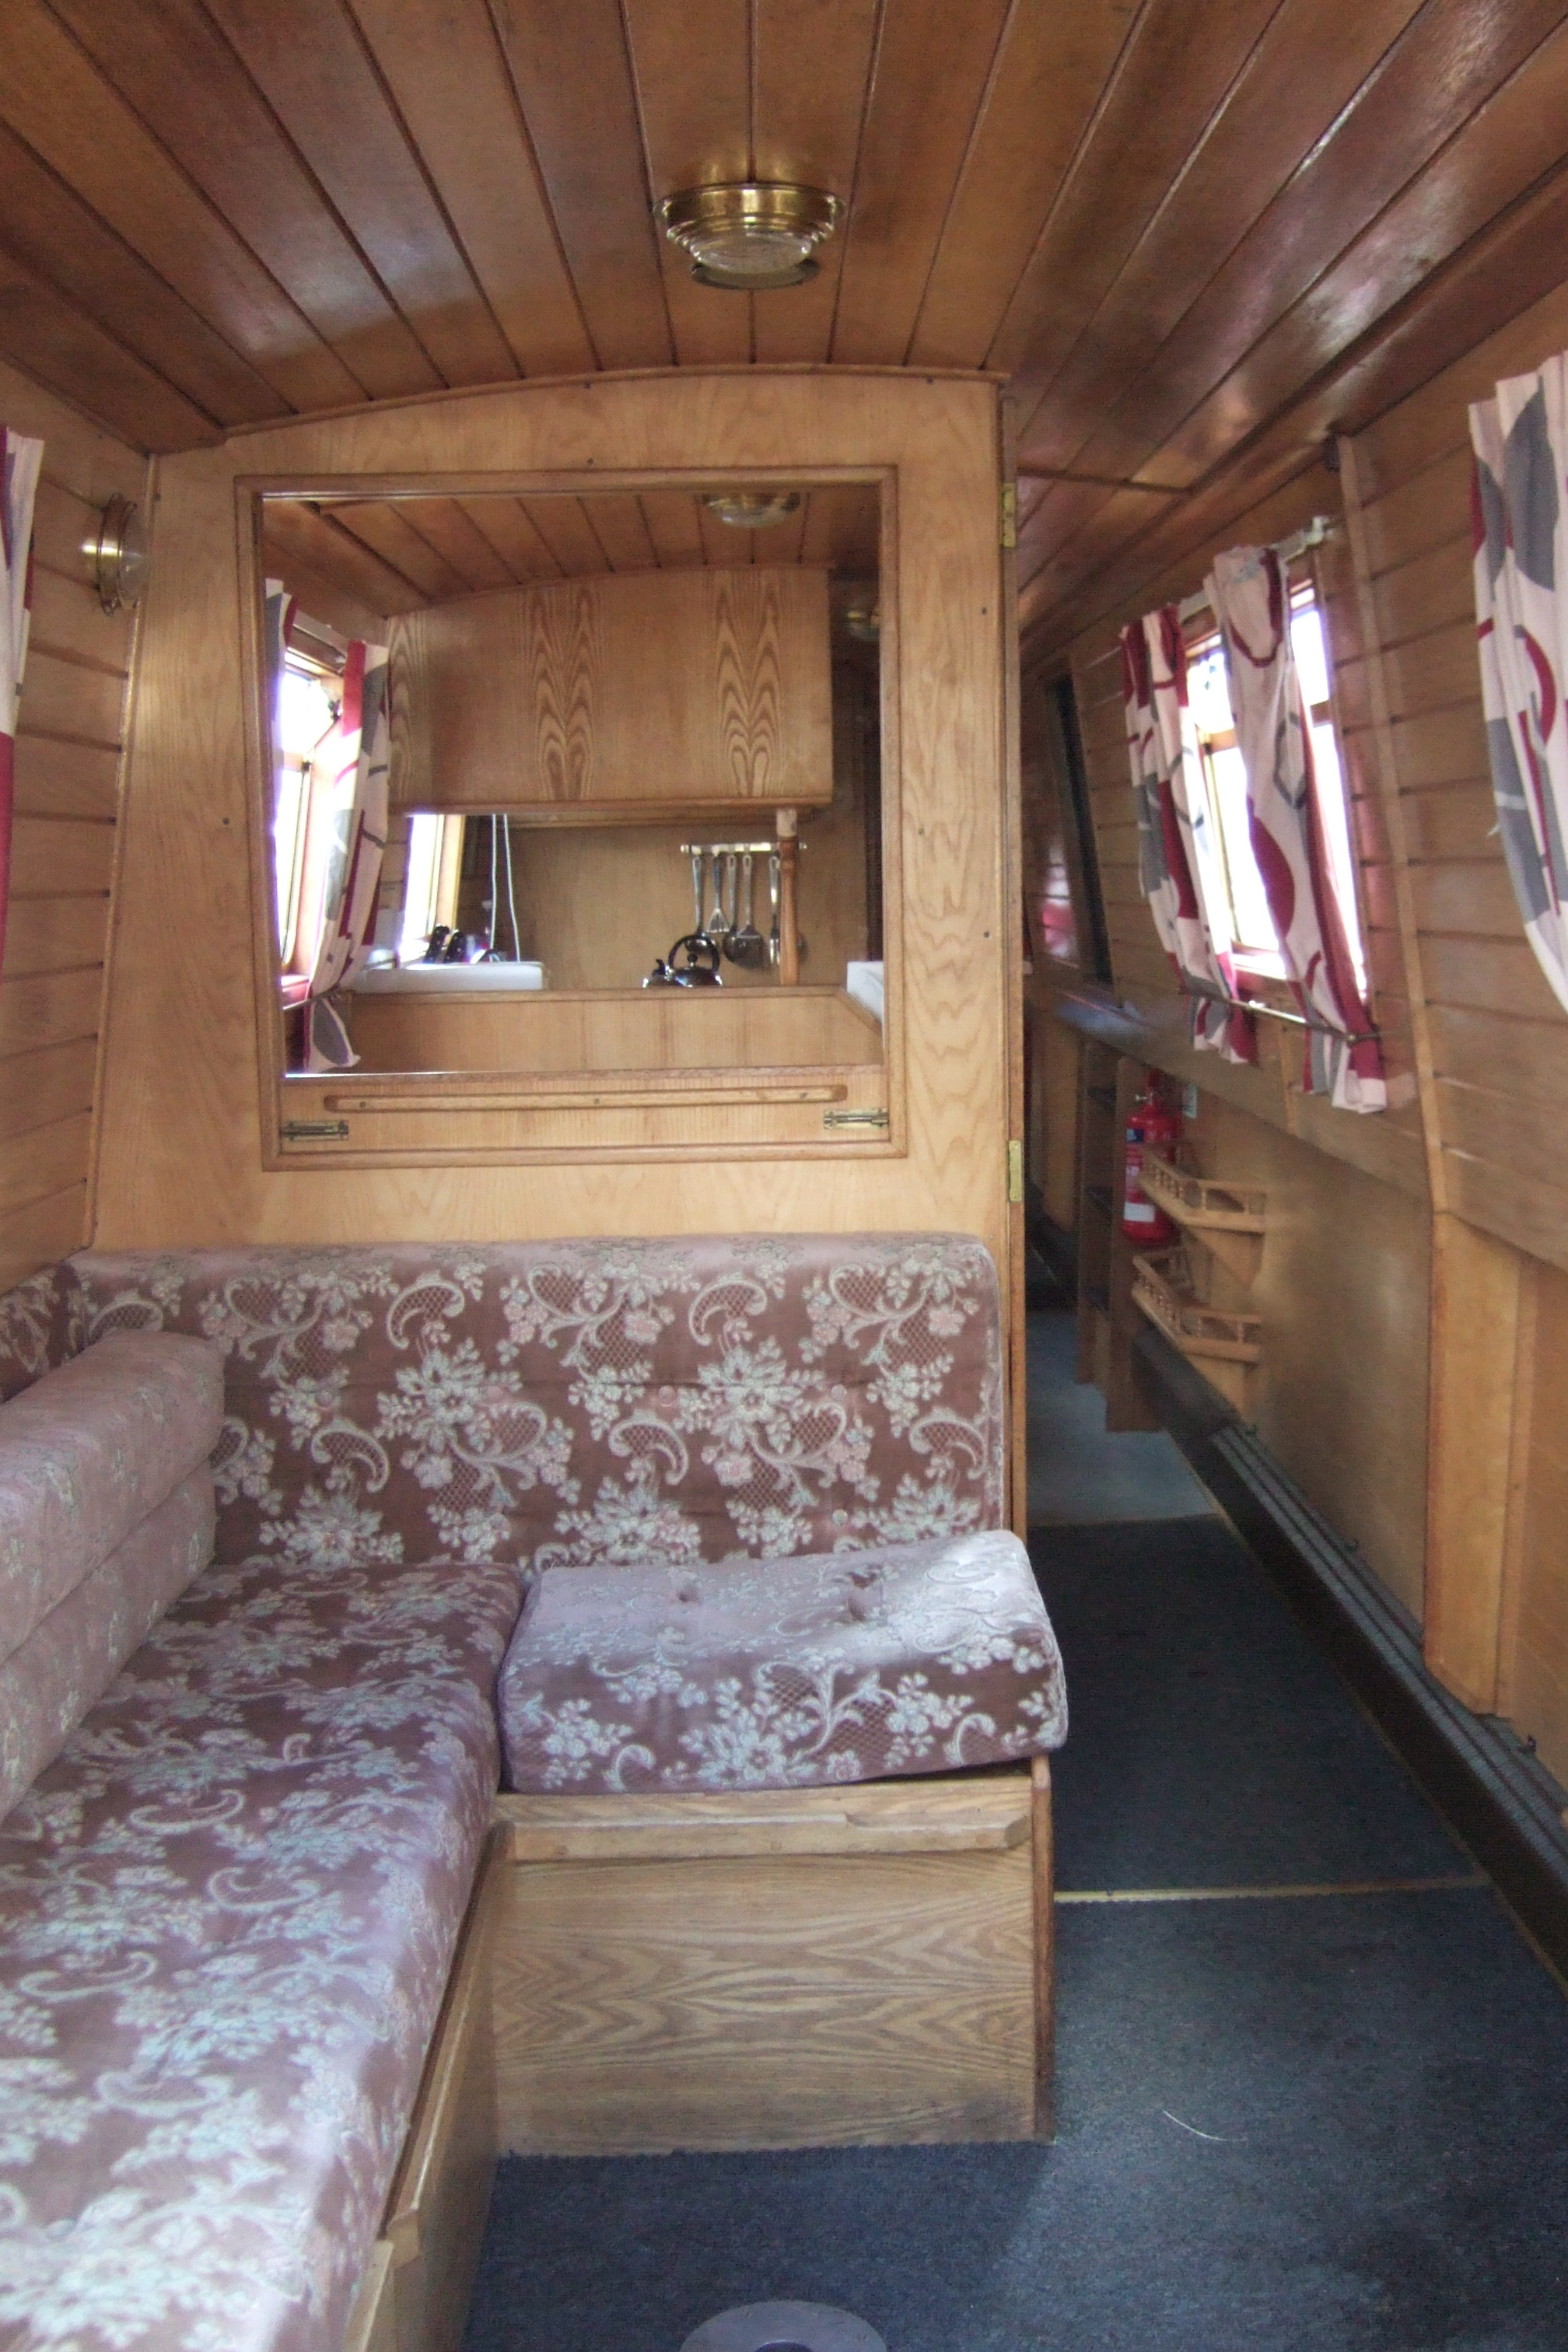 The S-Eve class canal boat